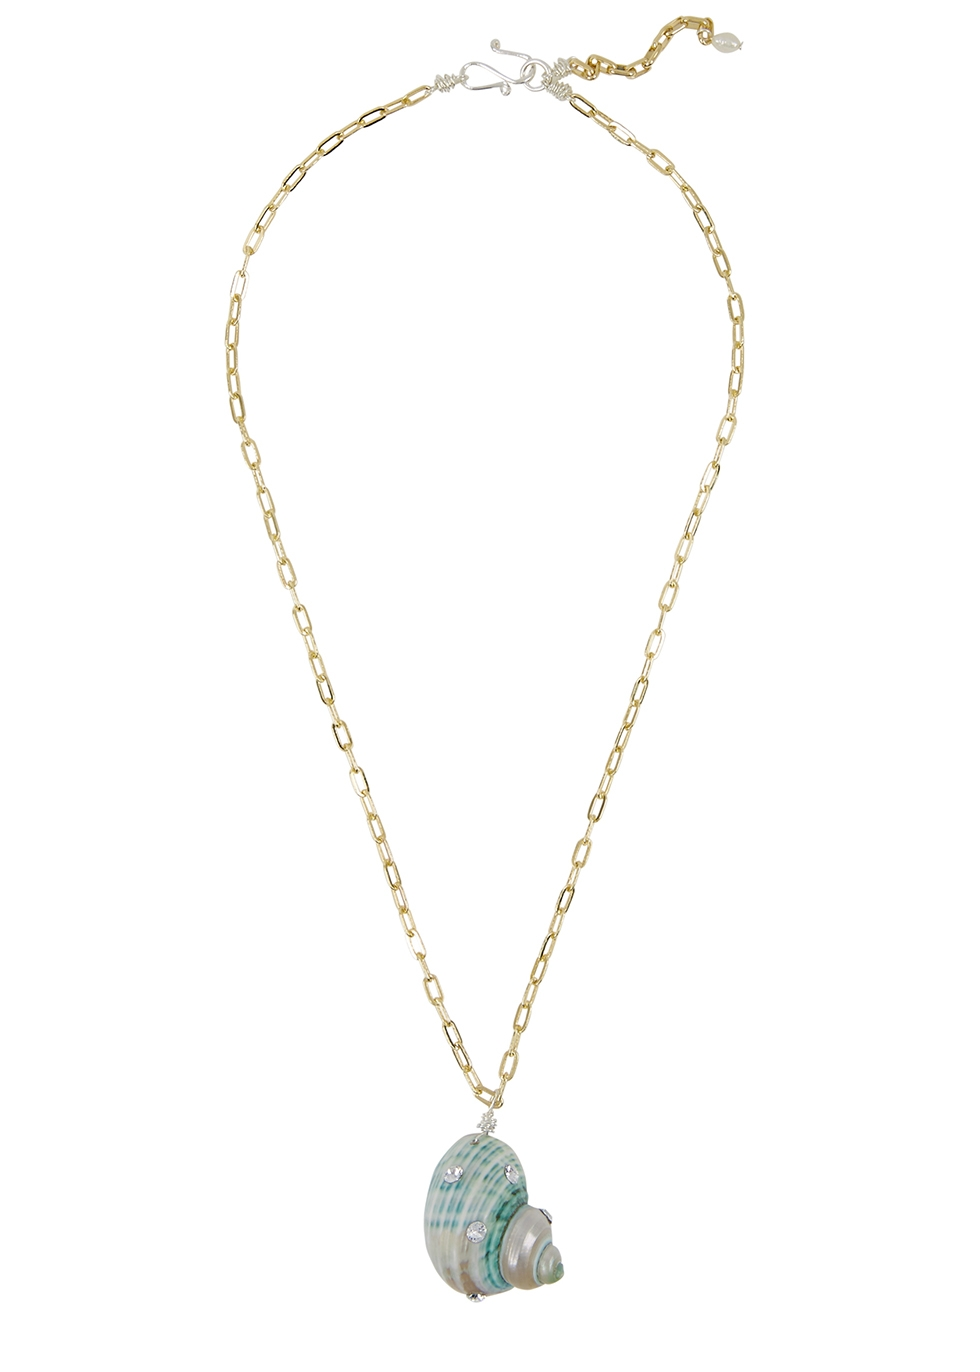 Paris Paris shell gold-plated necklace - WALD Berlin